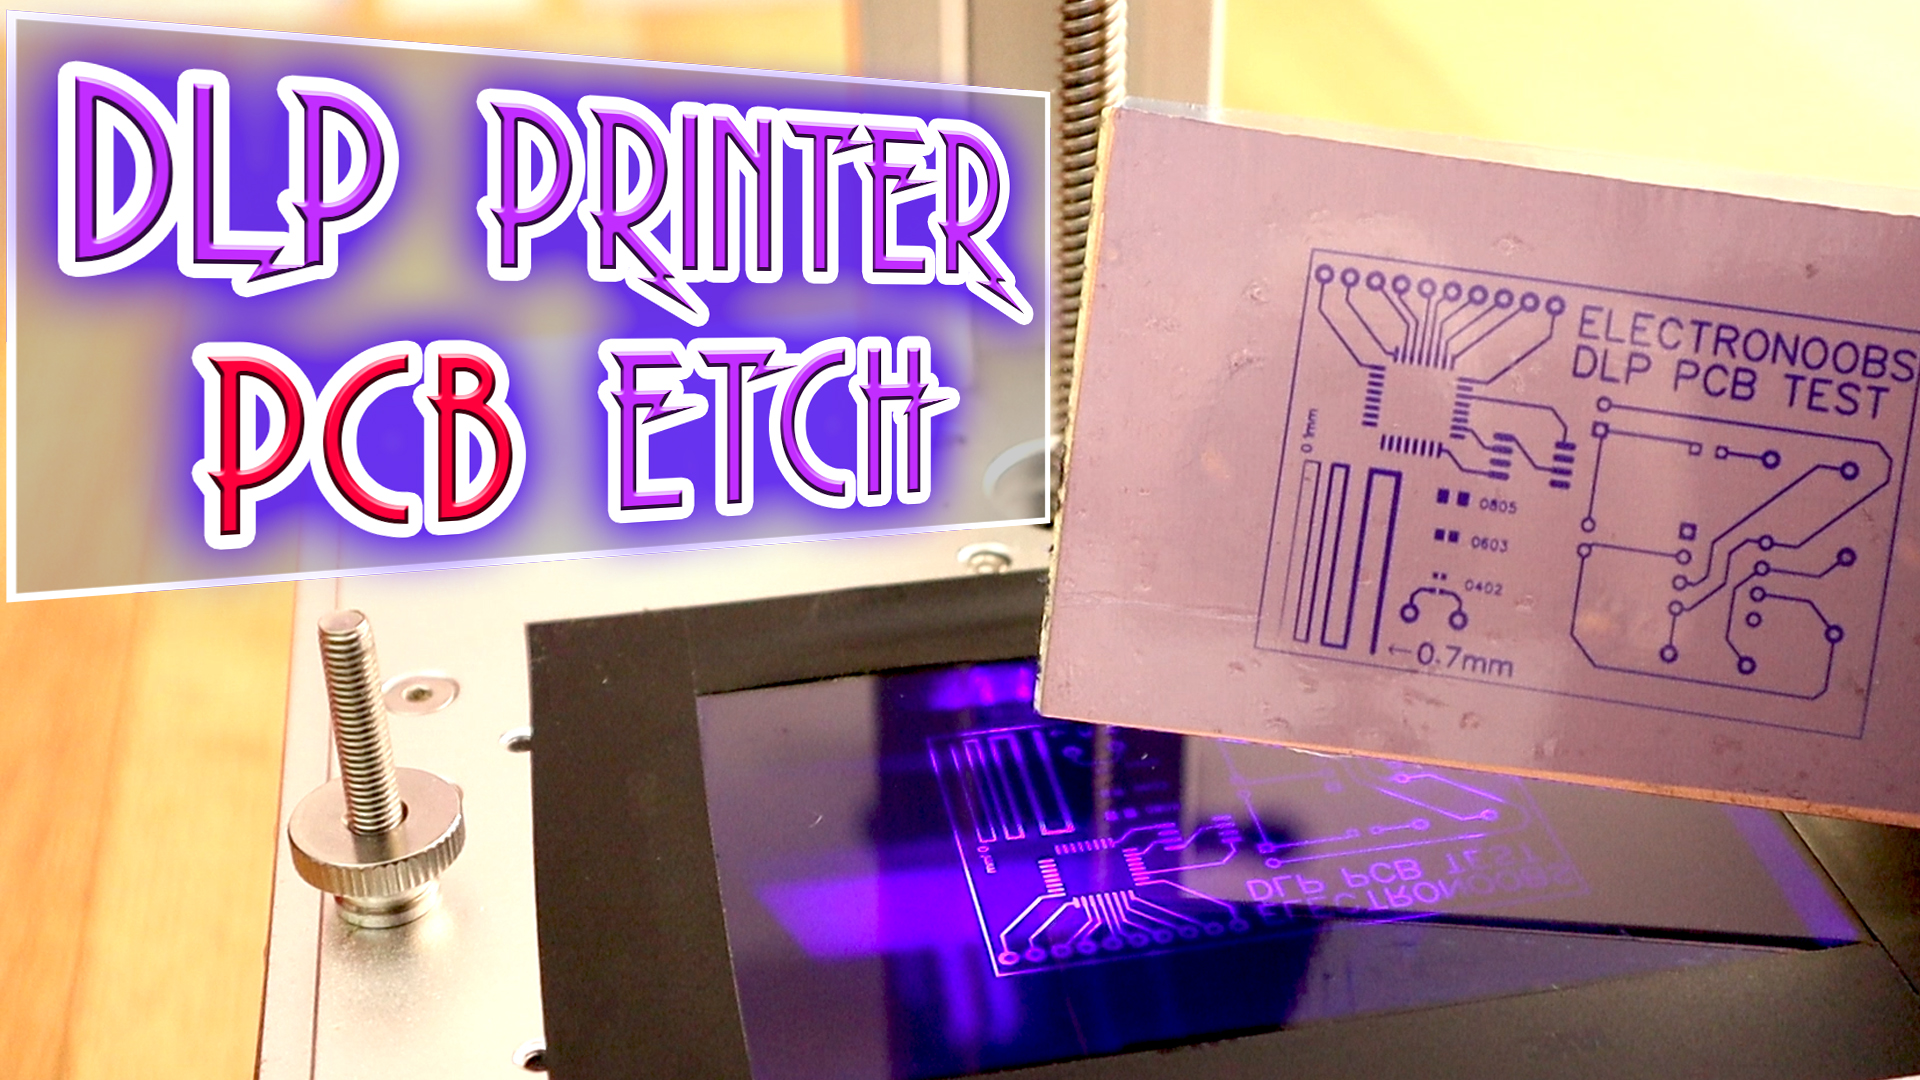 Electronoobs Electronics Tutorials Arduino Basic Circuits 3d Easy To Make Your Own Pcb39sprinted Circuit Boards Youtube New Tutorial On How Use A Dlp Printer Etch High Details Pcb Using Uv Sensitive Film And Light